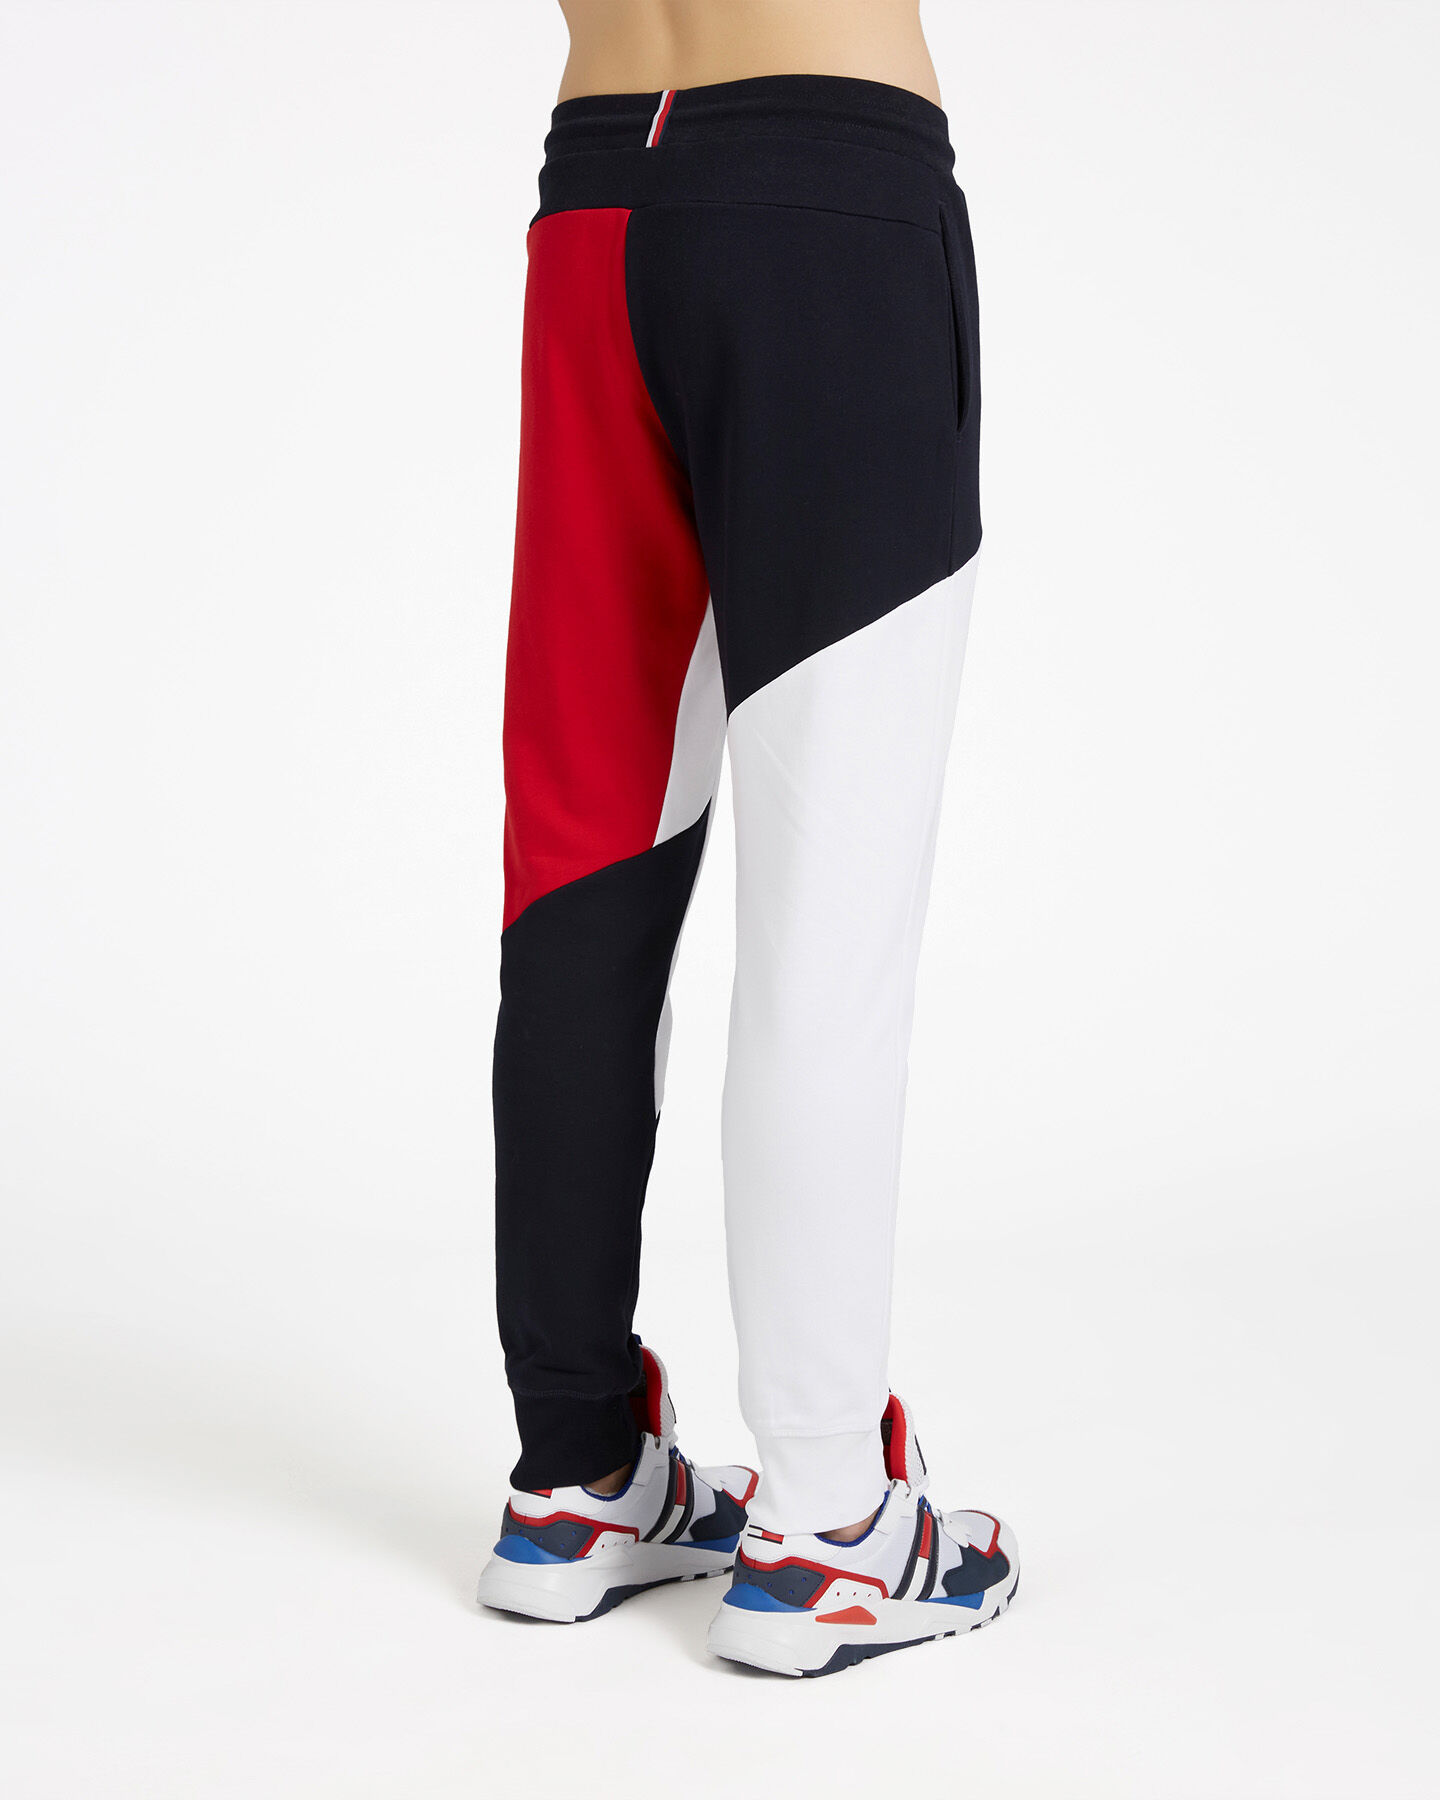 Pantalone TOMMY HILFIGER COLOR M S4089516 scatto 1